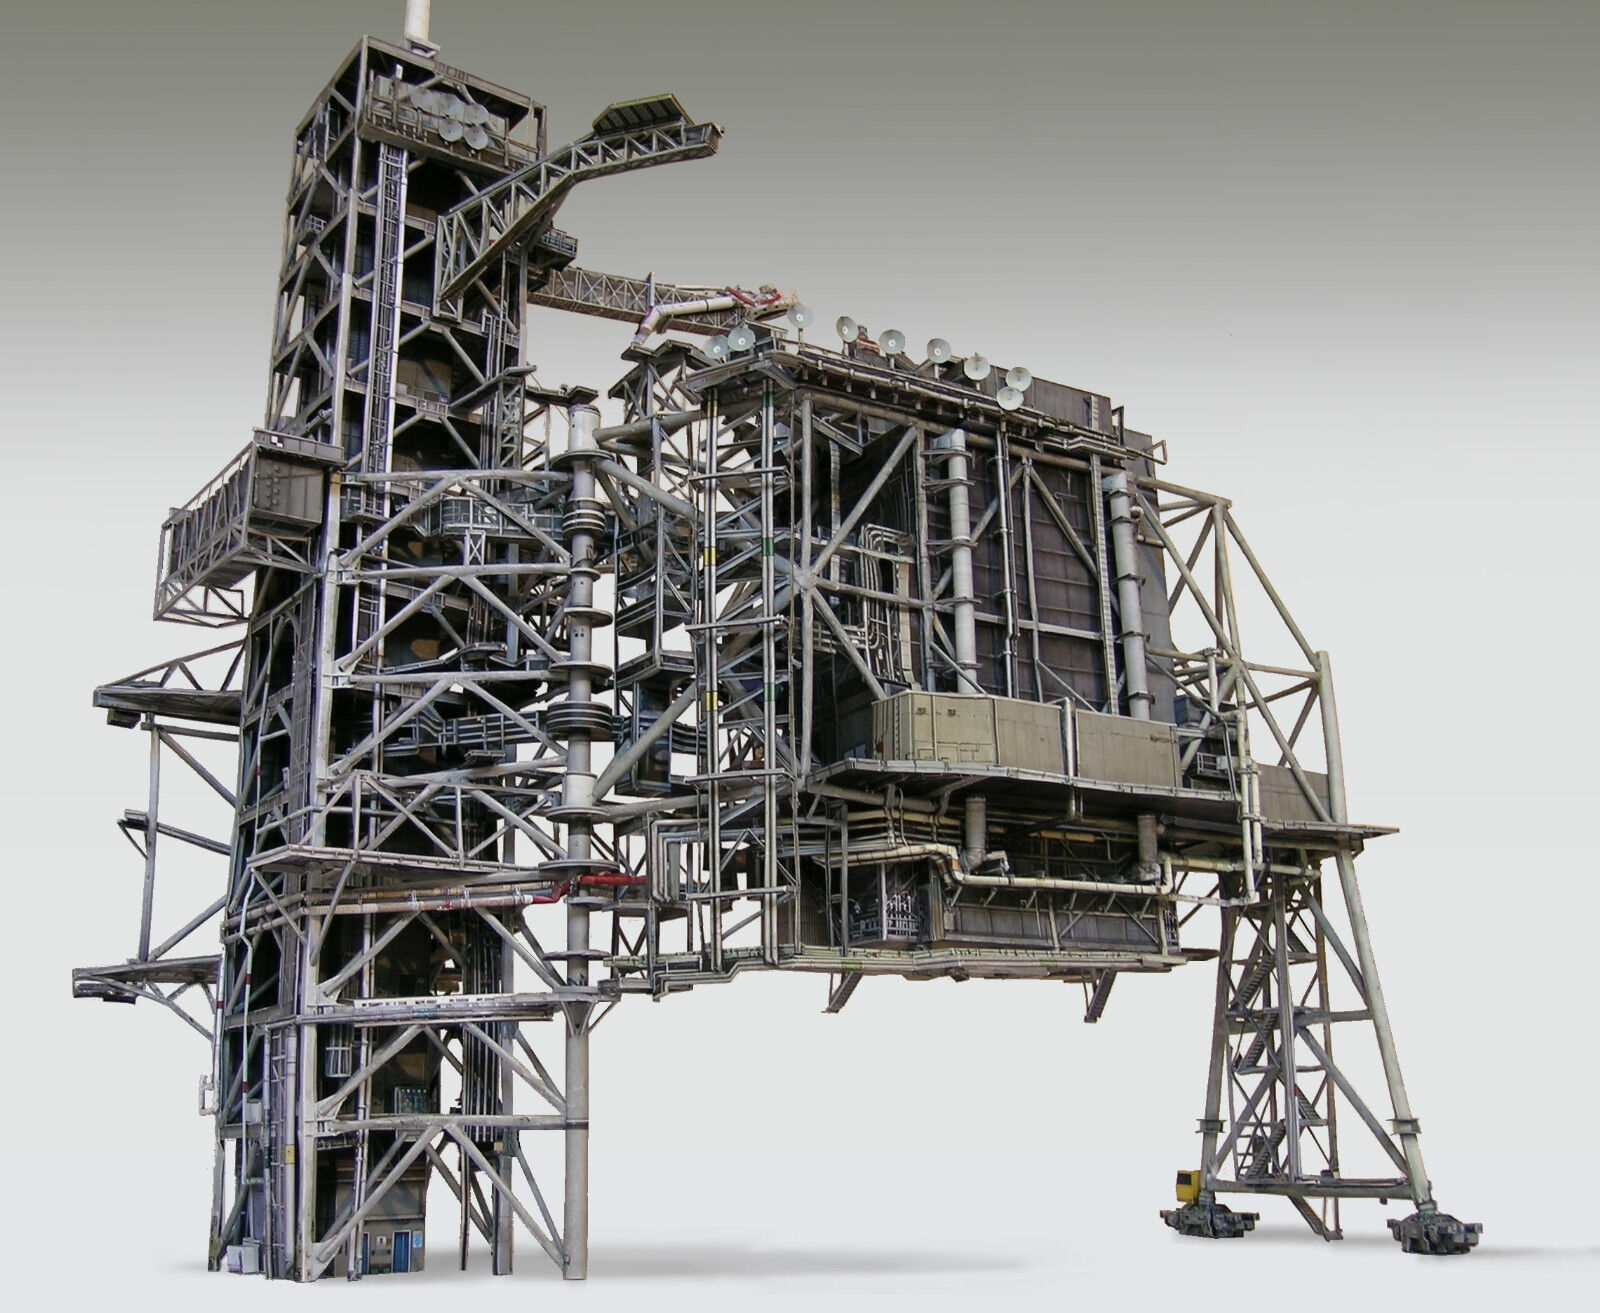 Space Shuttle Launch Pad Complex 39A Model Kit 4 Revell or ...